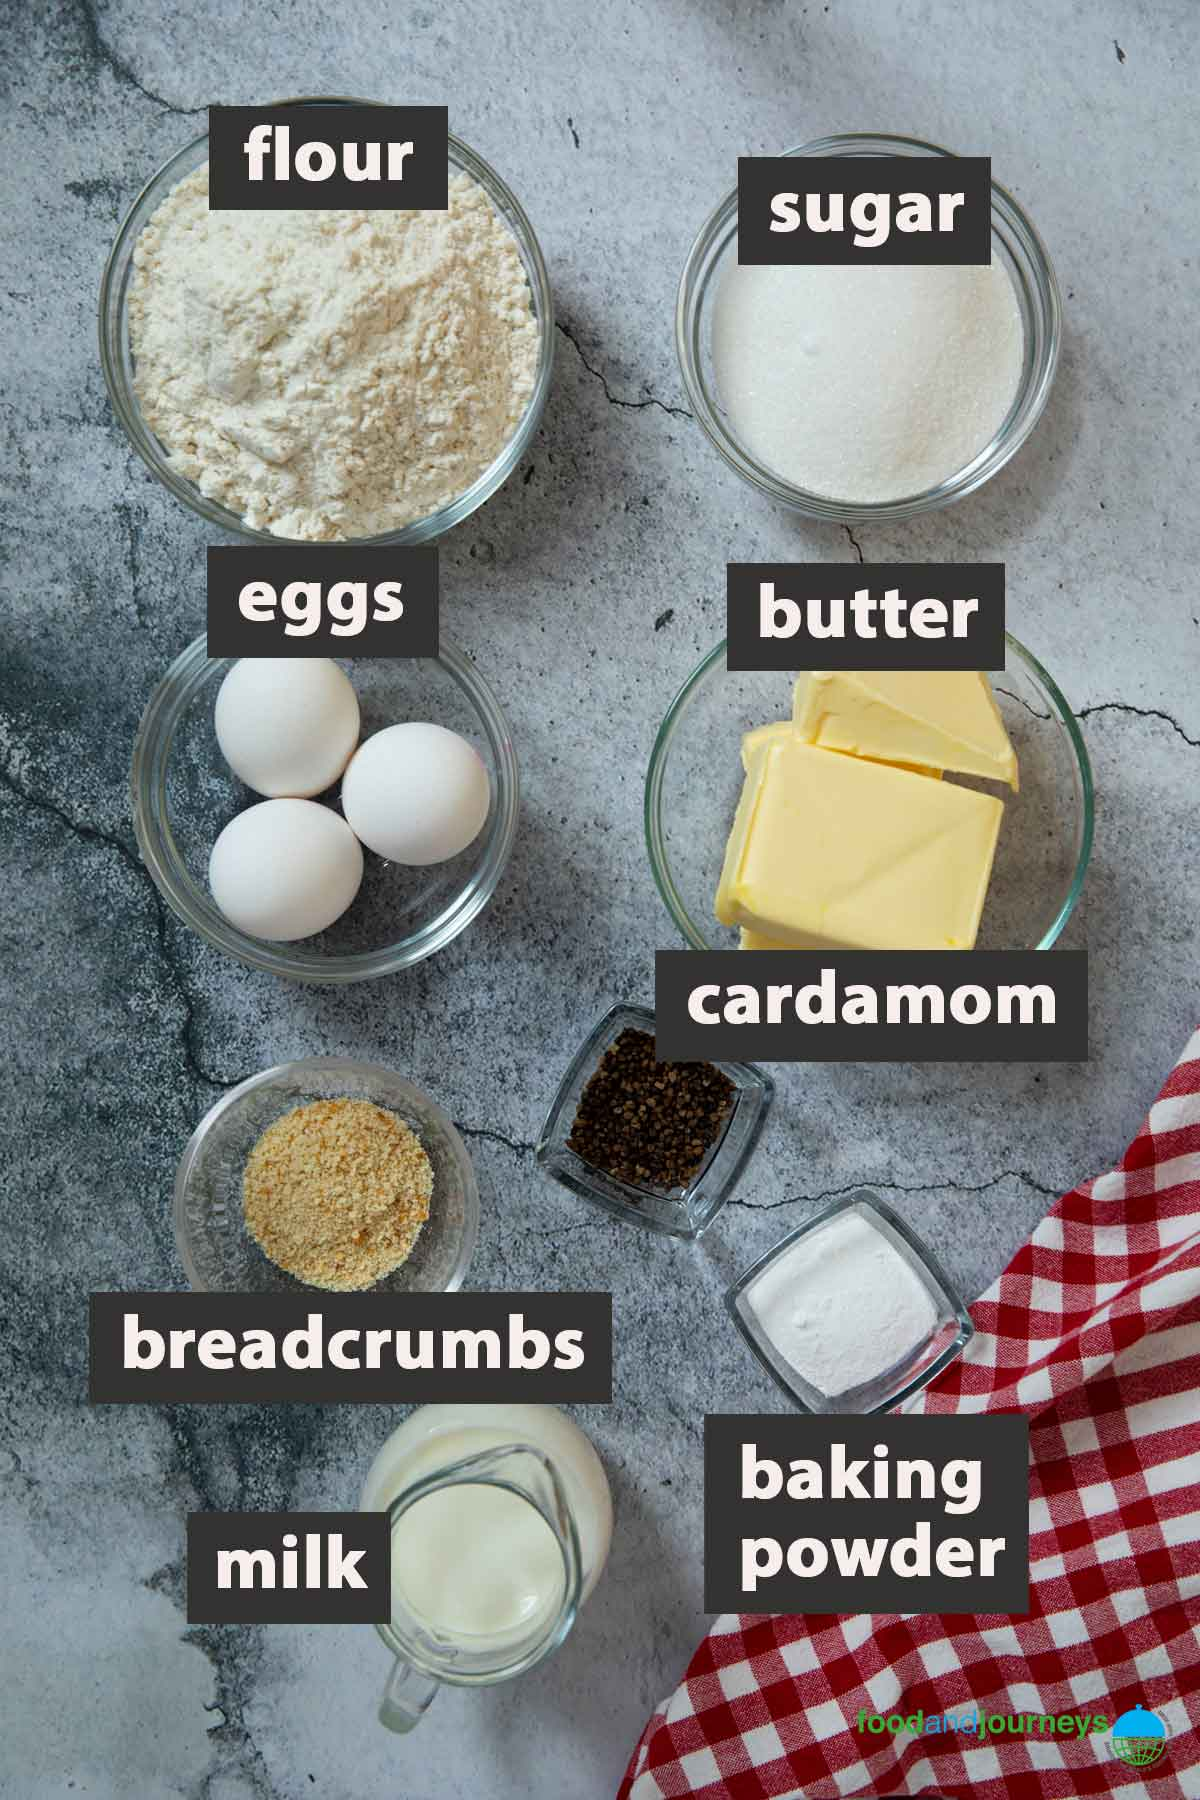 All the ingredients you need to prepare easy cardamom cake at home.